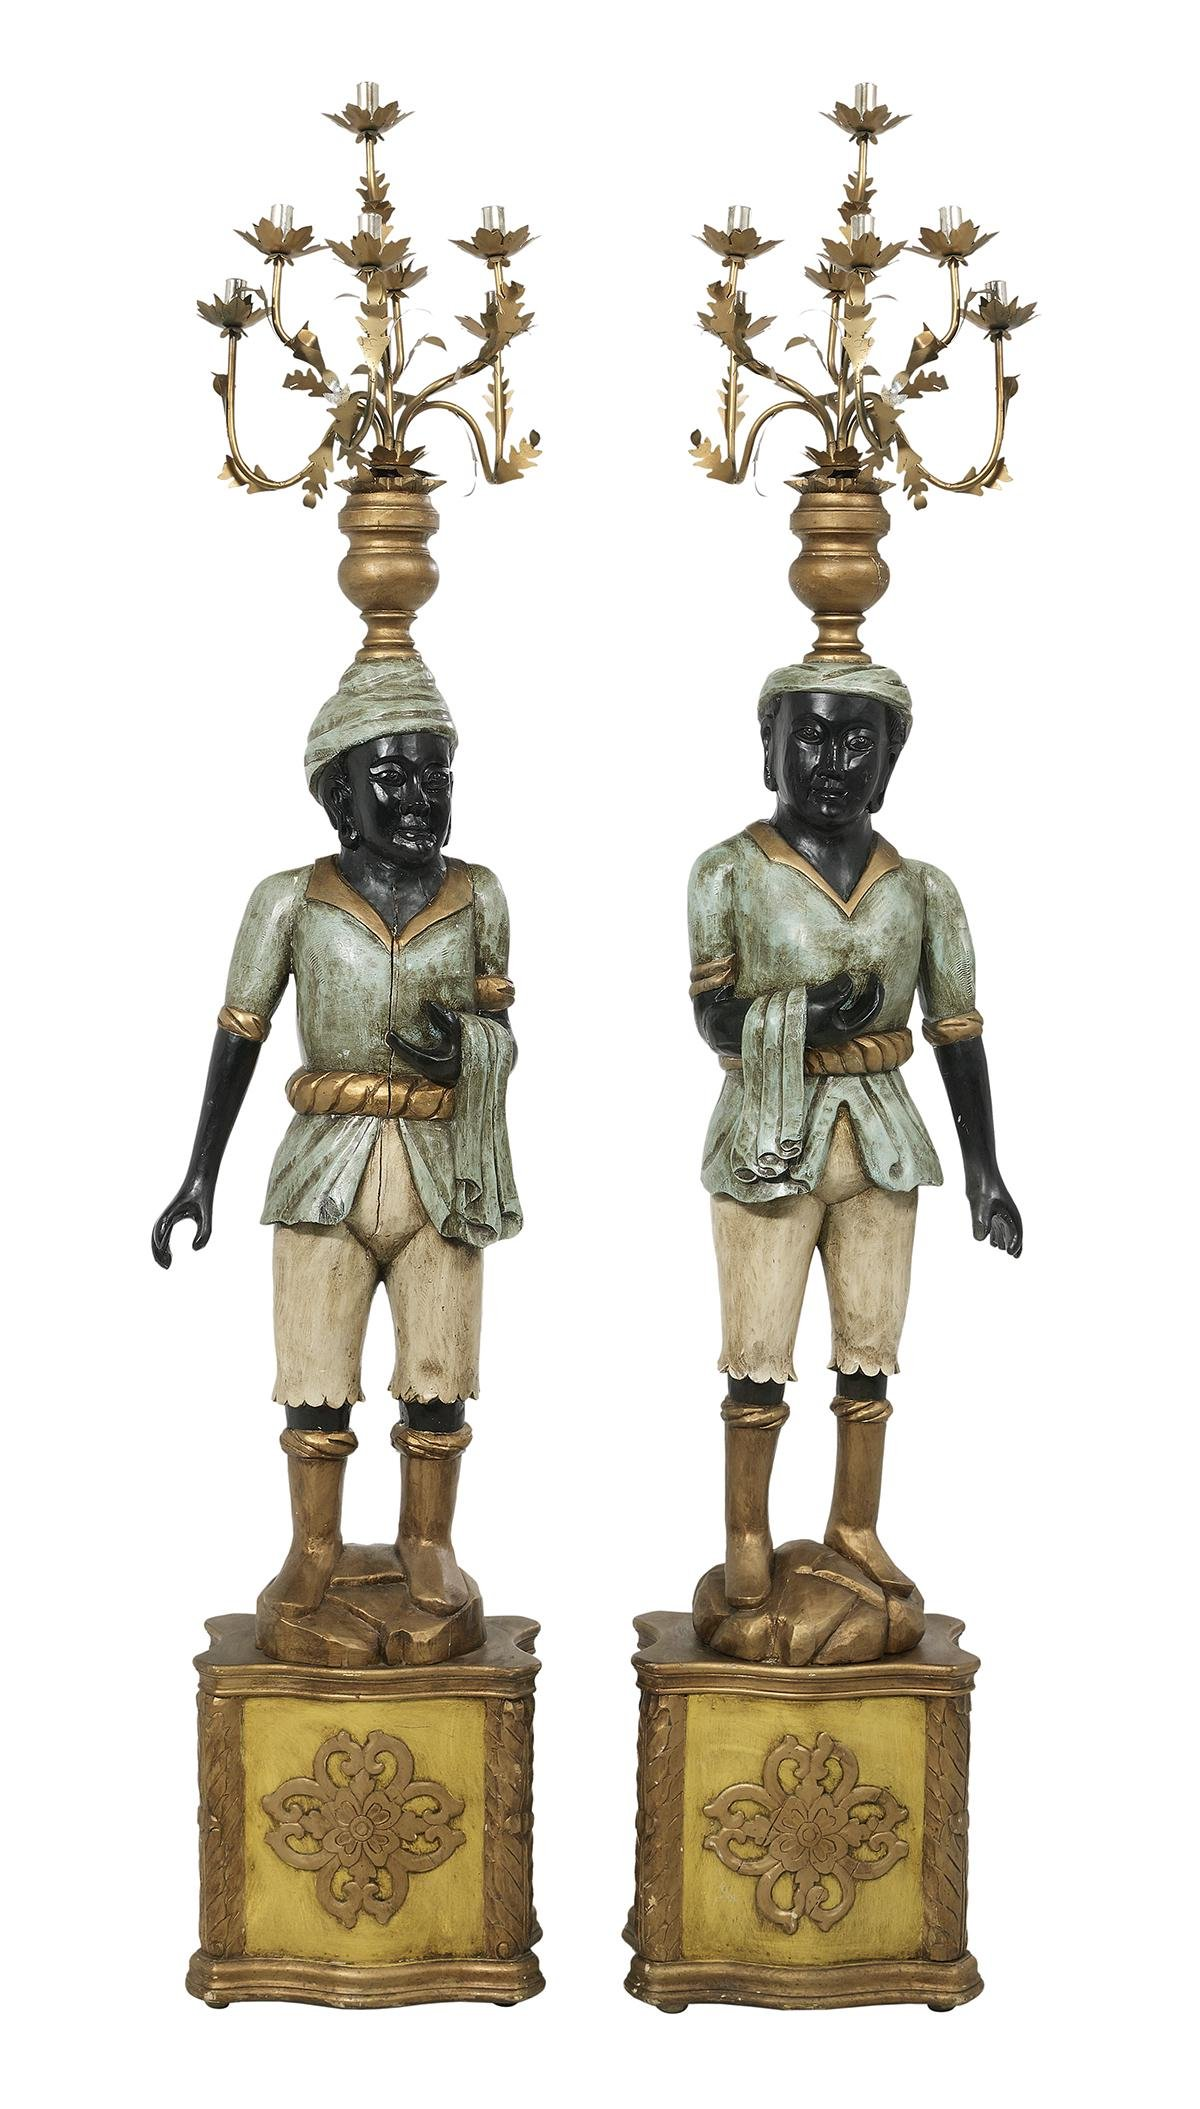 Balinese-Style Painted & Metal Figural Torcheres